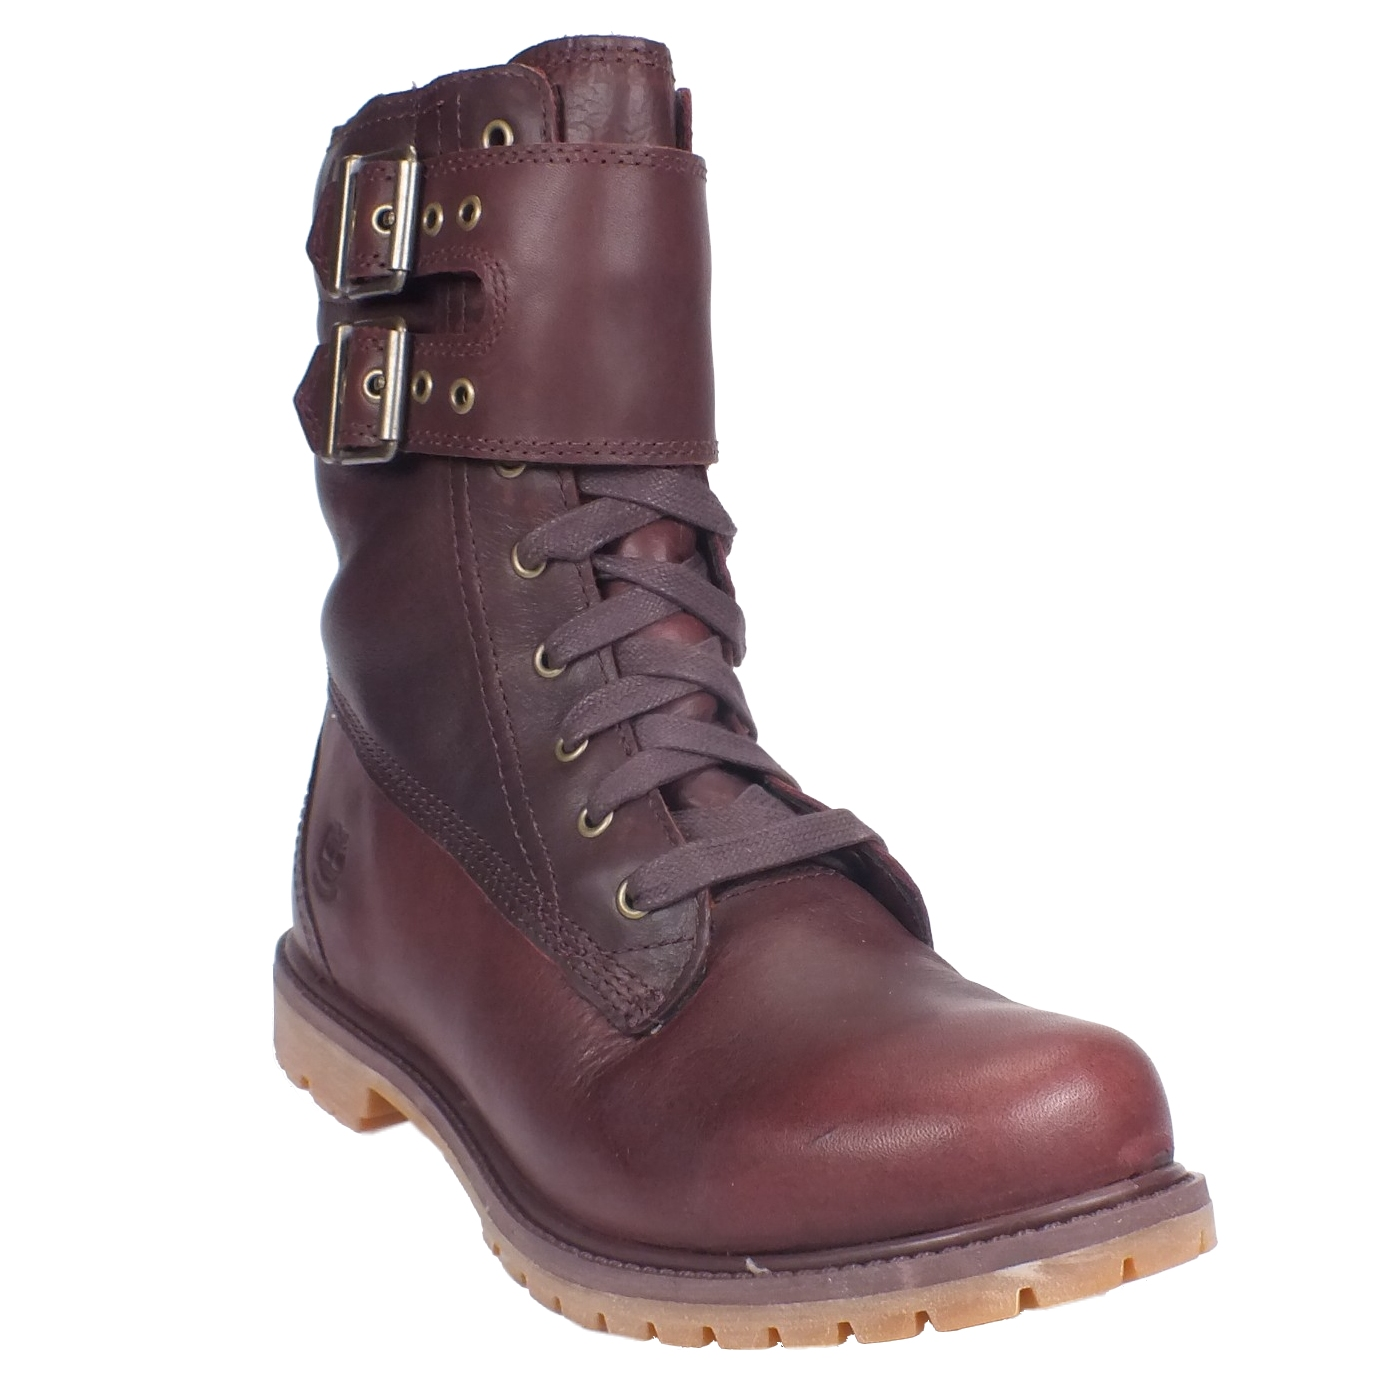 timberland earthkeepers 8 inch double strap boots damen stiefel leder schnalle ebay. Black Bedroom Furniture Sets. Home Design Ideas